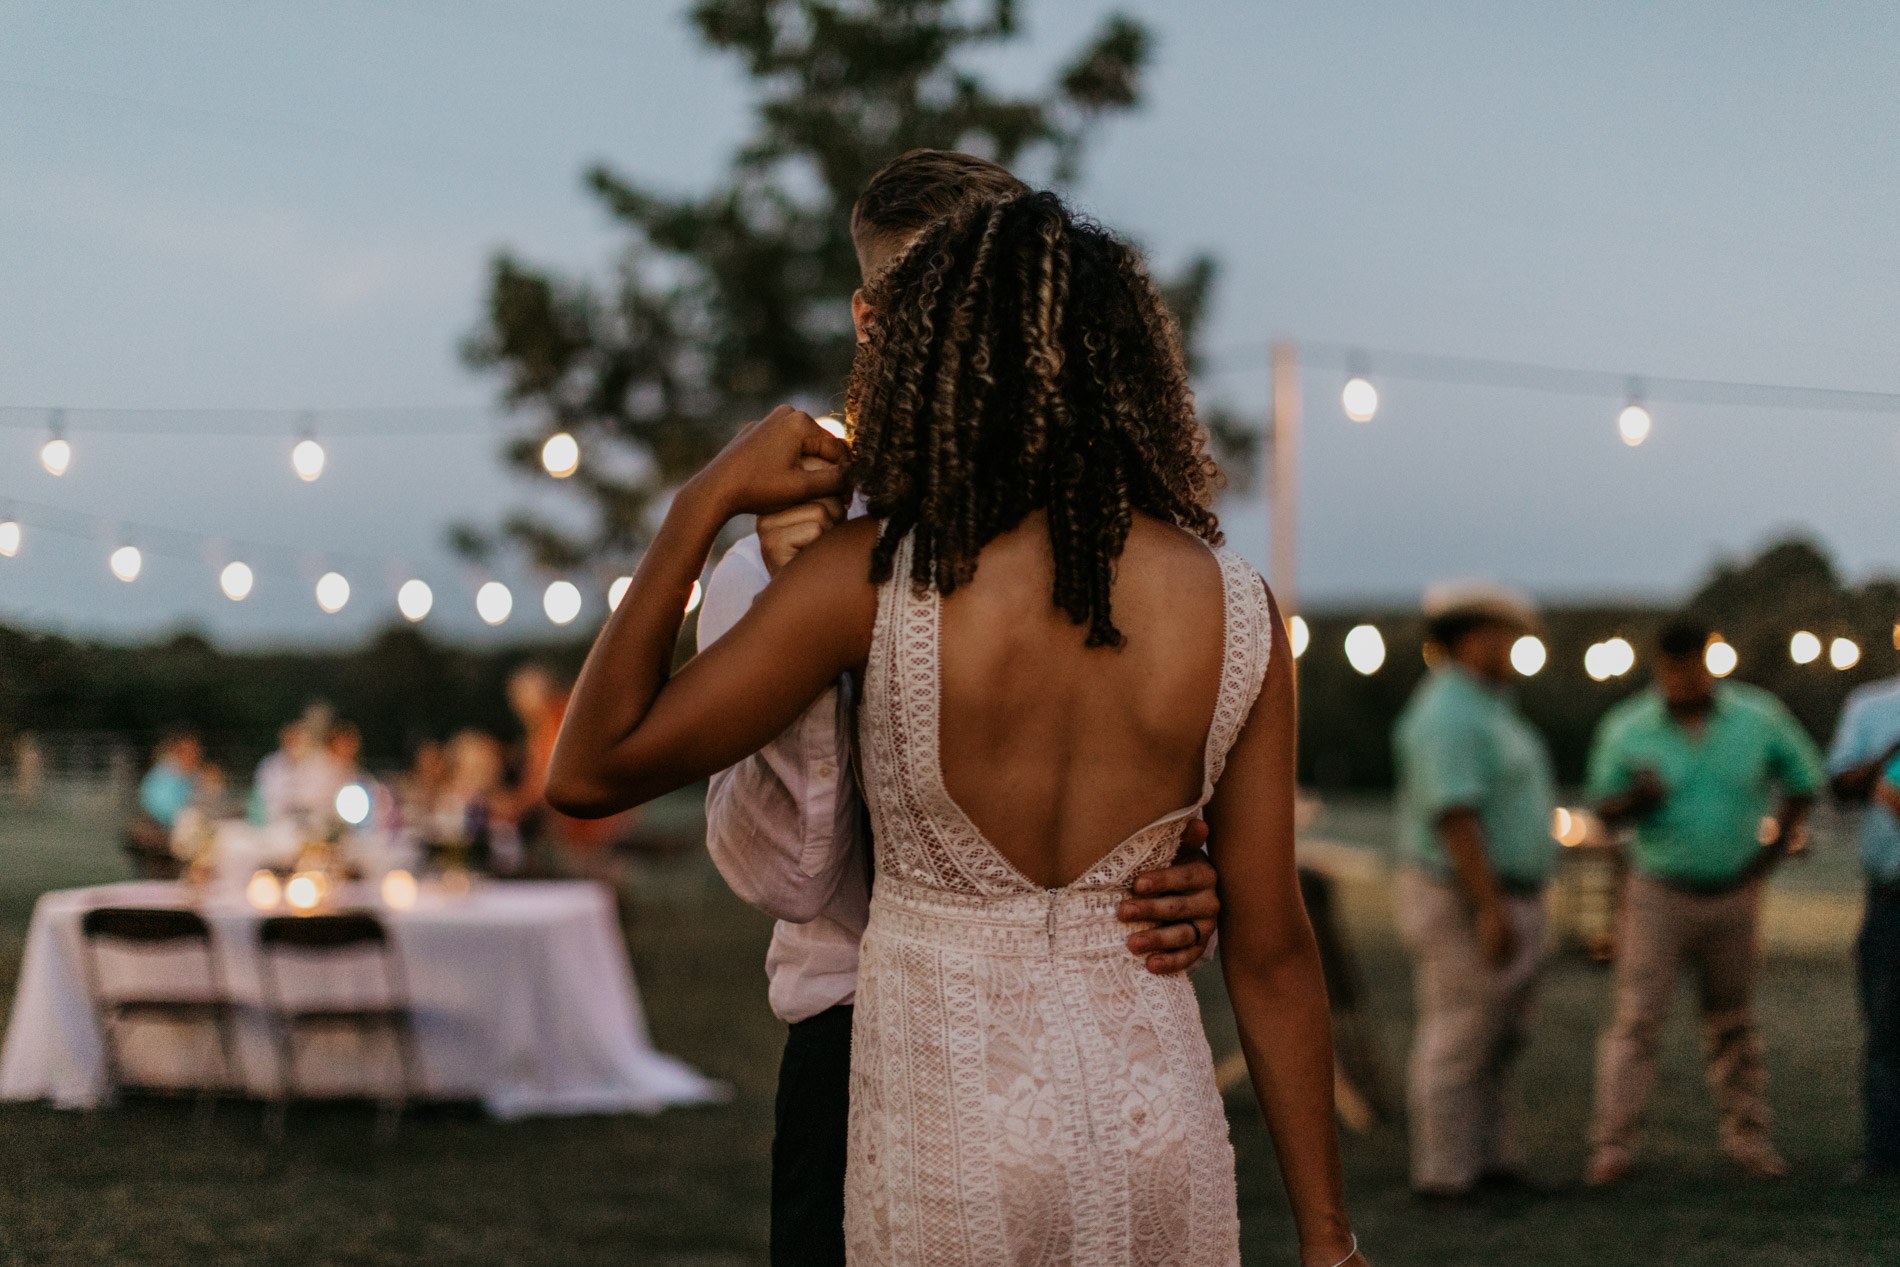 Bride and groom dancing romantically in East Texas on wedding day